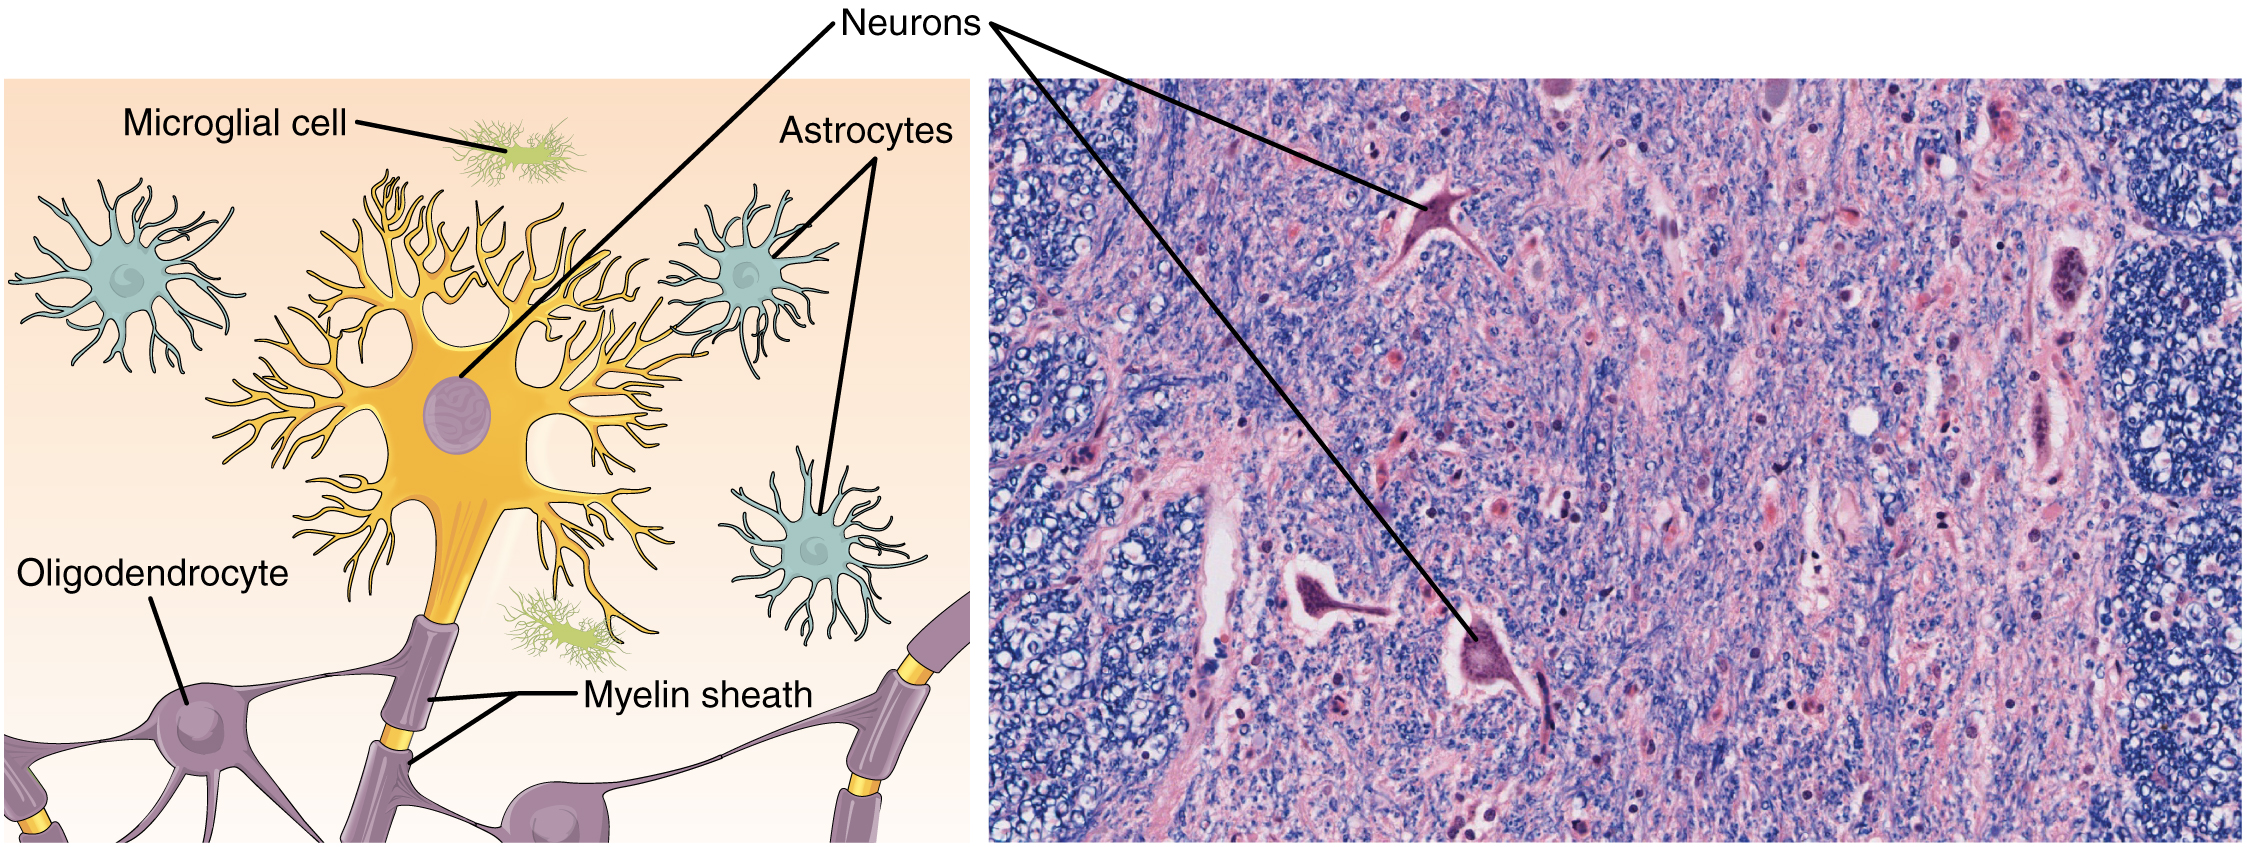 Nervous Tissue Mediates Perception And Response Anatomy